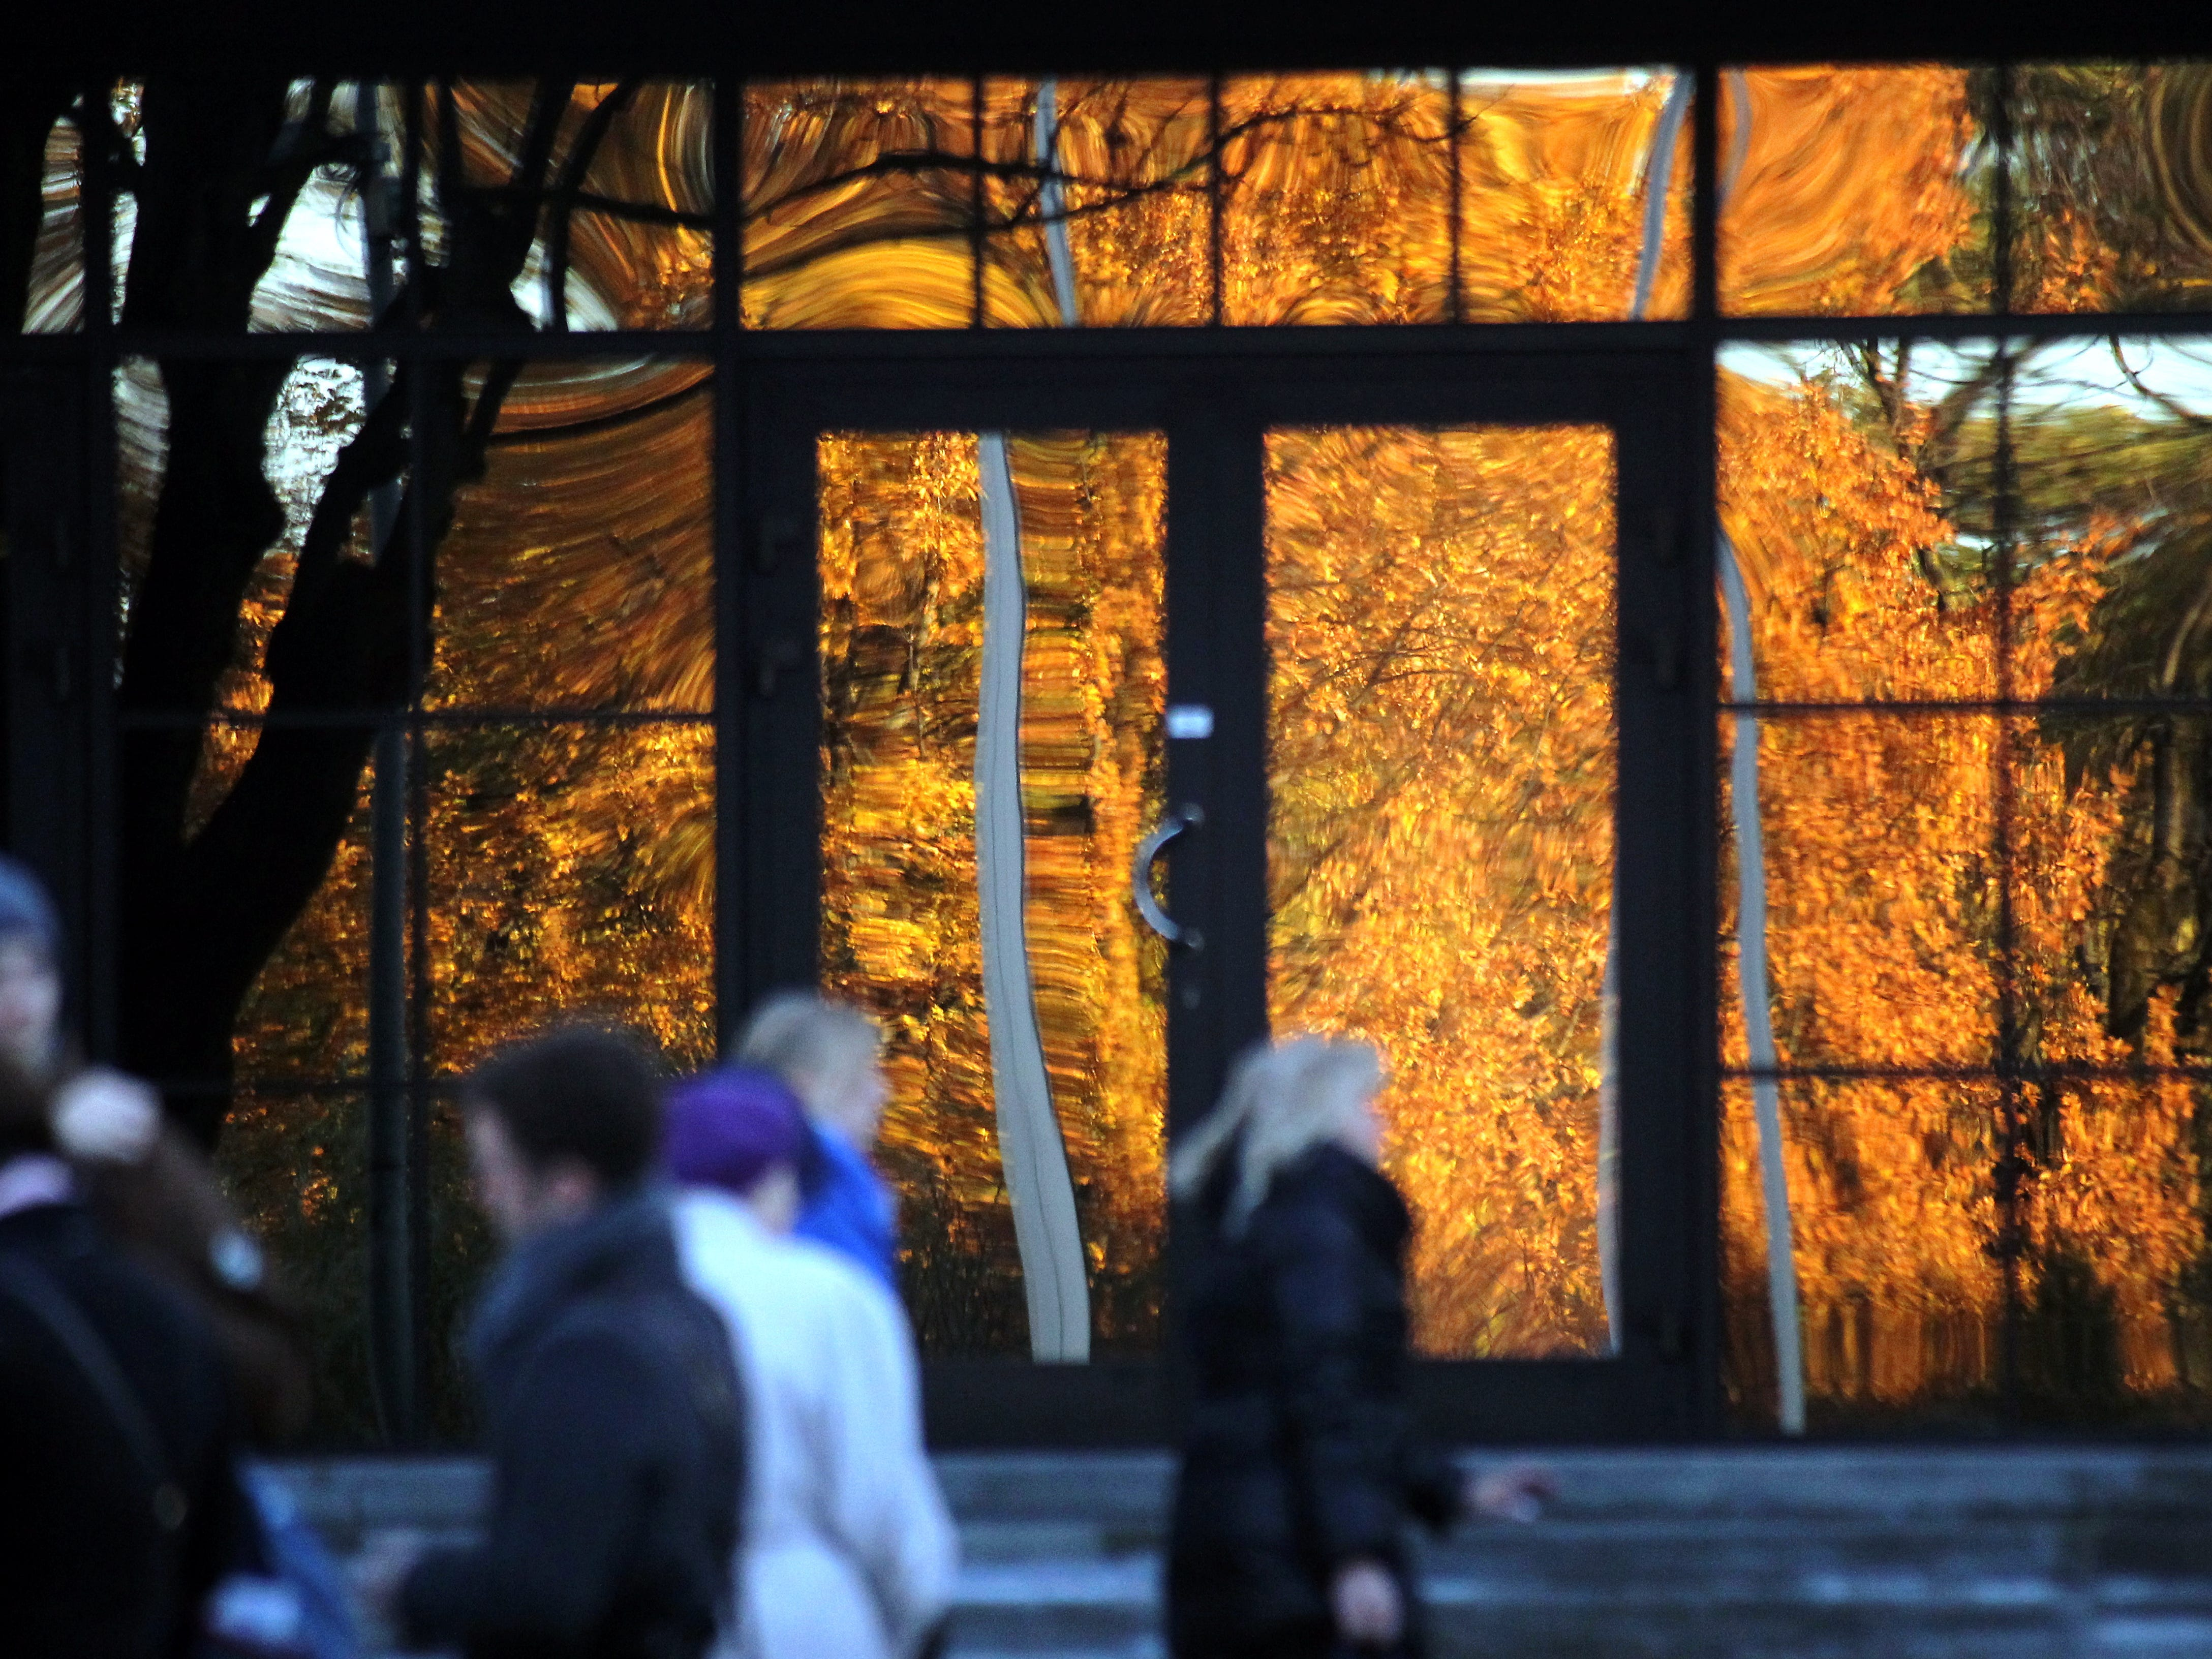 People pass by a house with reflection of autumnal colored trees on a glass wall in Riga, Latvia, Nov. 4, 2018.